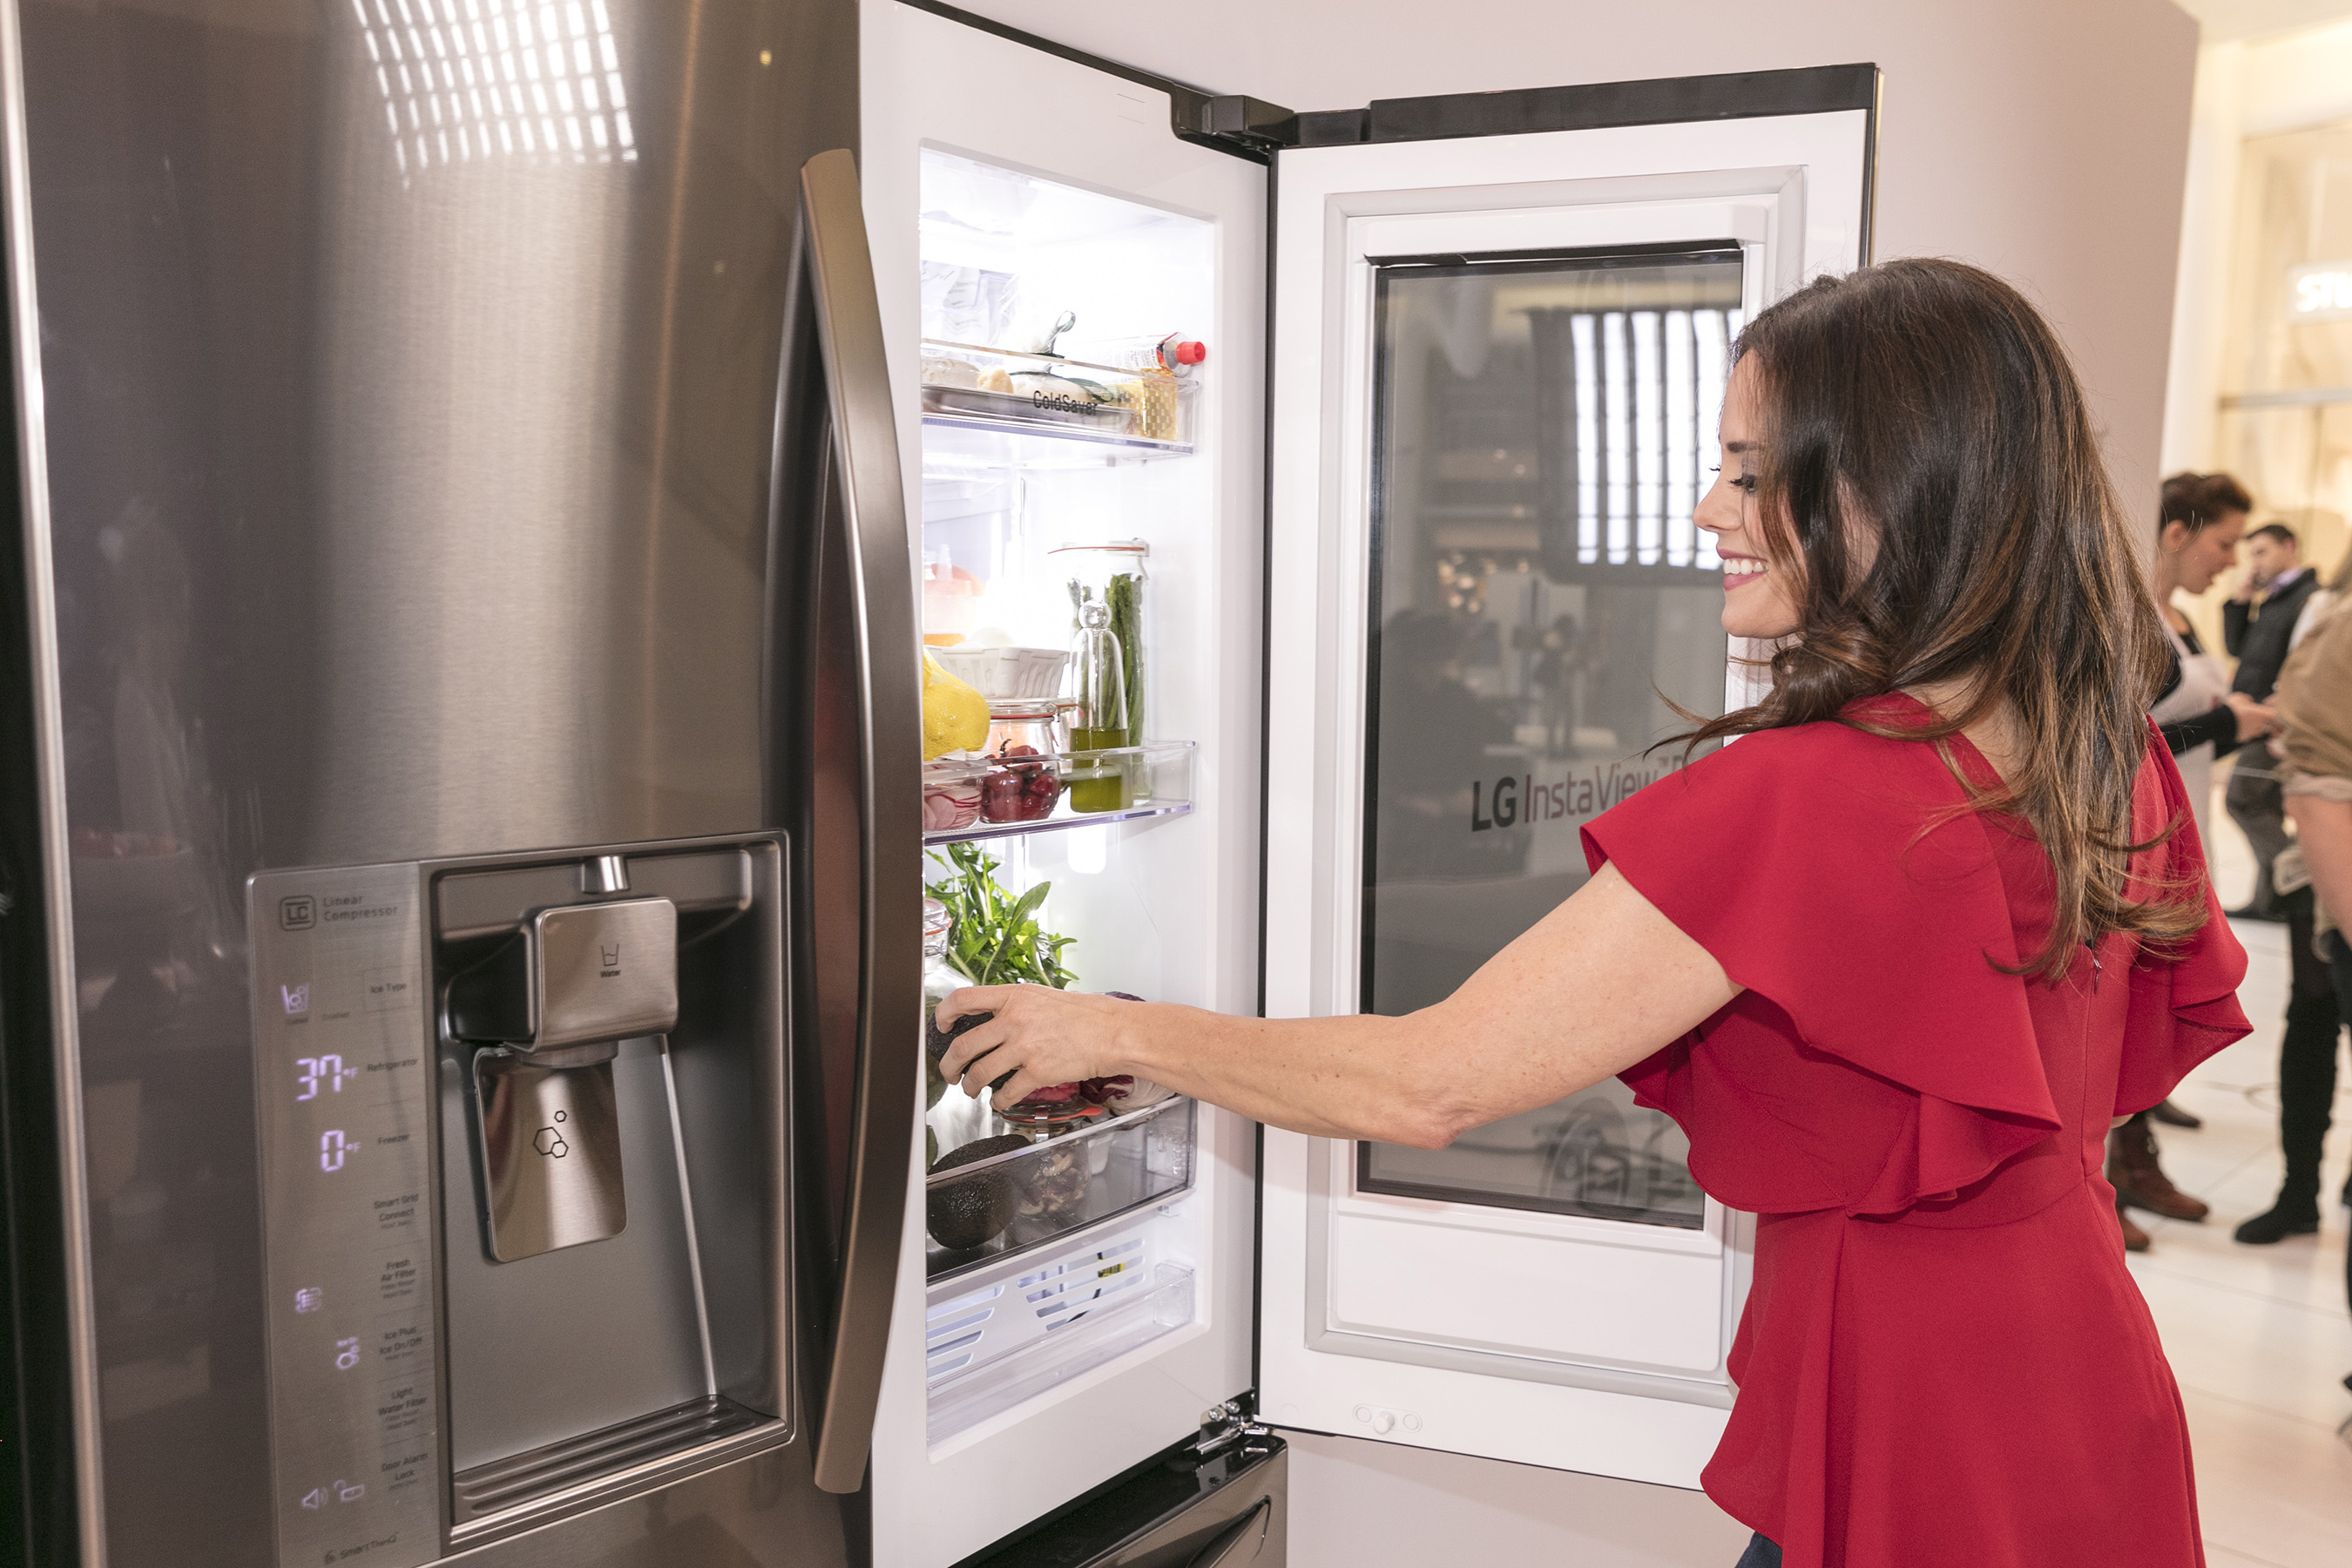 LG InstaView Refrigerator Surprised New Yorkers With Starring Role In Interactive Musical Experience